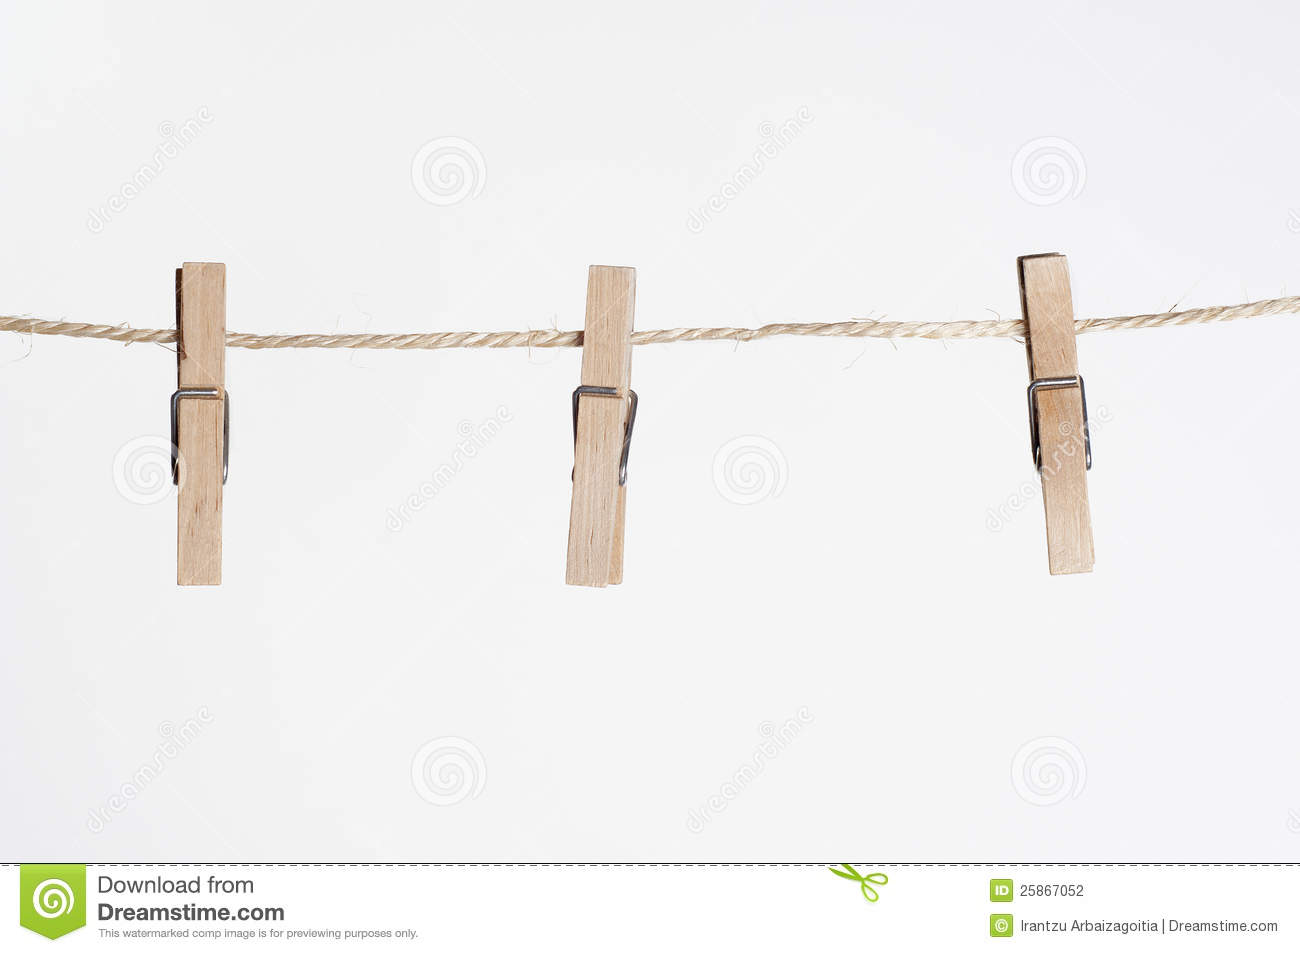 Three Clamps For Laundry Hanging On A String Stock